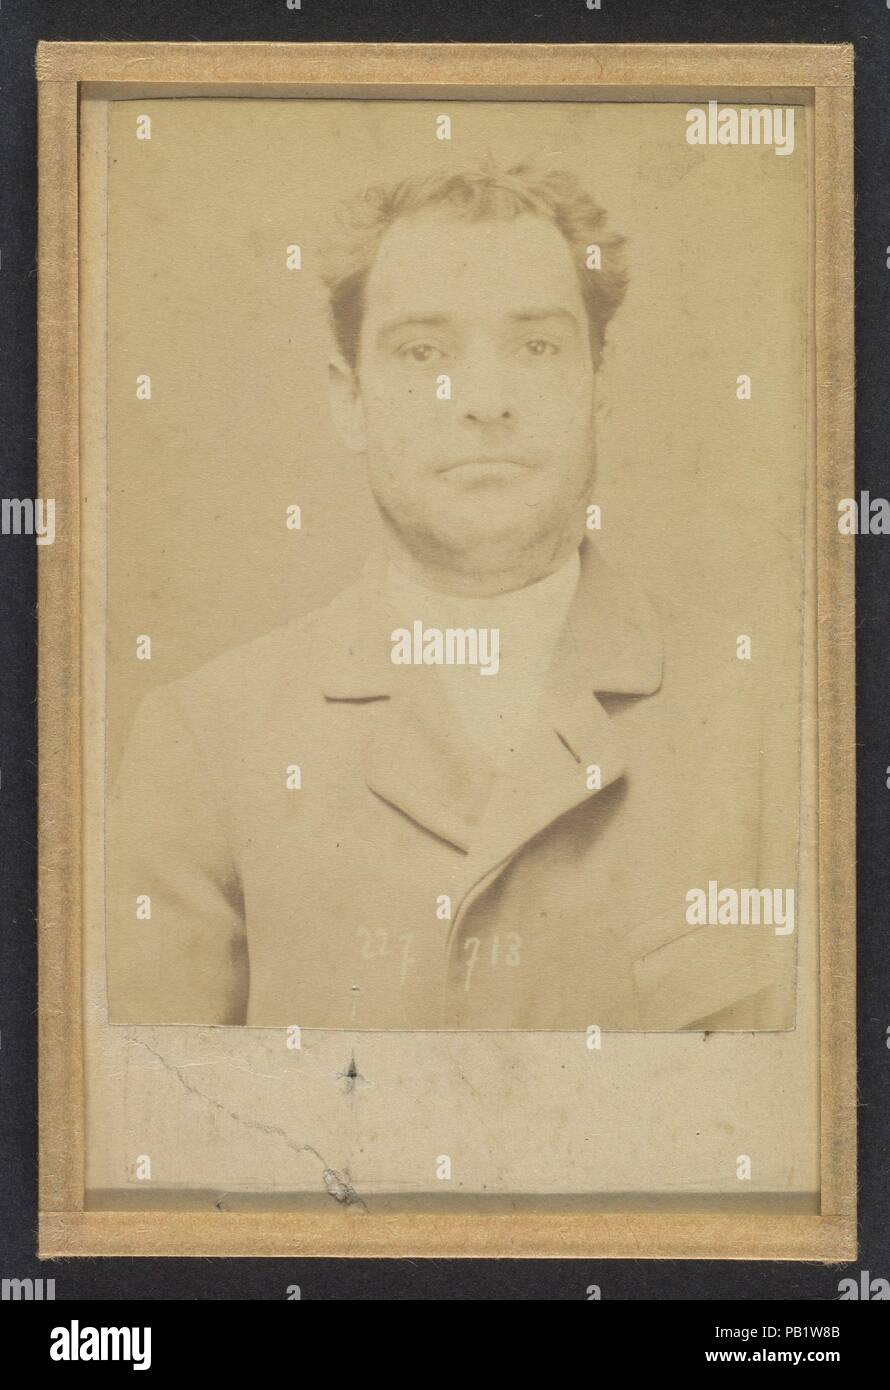 Dauriac. Henri, Georges. 36 ans, né à Memphis (USA). Agent d'affaires. Extortion de fonds. 22/12/94. Artist: Alphonse Bertillon (French, 1853-1914). Dimensions: 10.5 x 7 x 0.5 cm (4 1/8 x 2 3/4 x 3/16 in.) each. Date: 1894.  Born into a distinguished family of scientists and statisticians, Bertillon began his career as a clerk in the Identification Bureau of the Paris Prefecture of Police in 1879. Tasked with maintaining reliable police records of offenders, he developed the first modern system of criminal identification. The system, which became known as Bertillonage, had three components: an Stock Photo